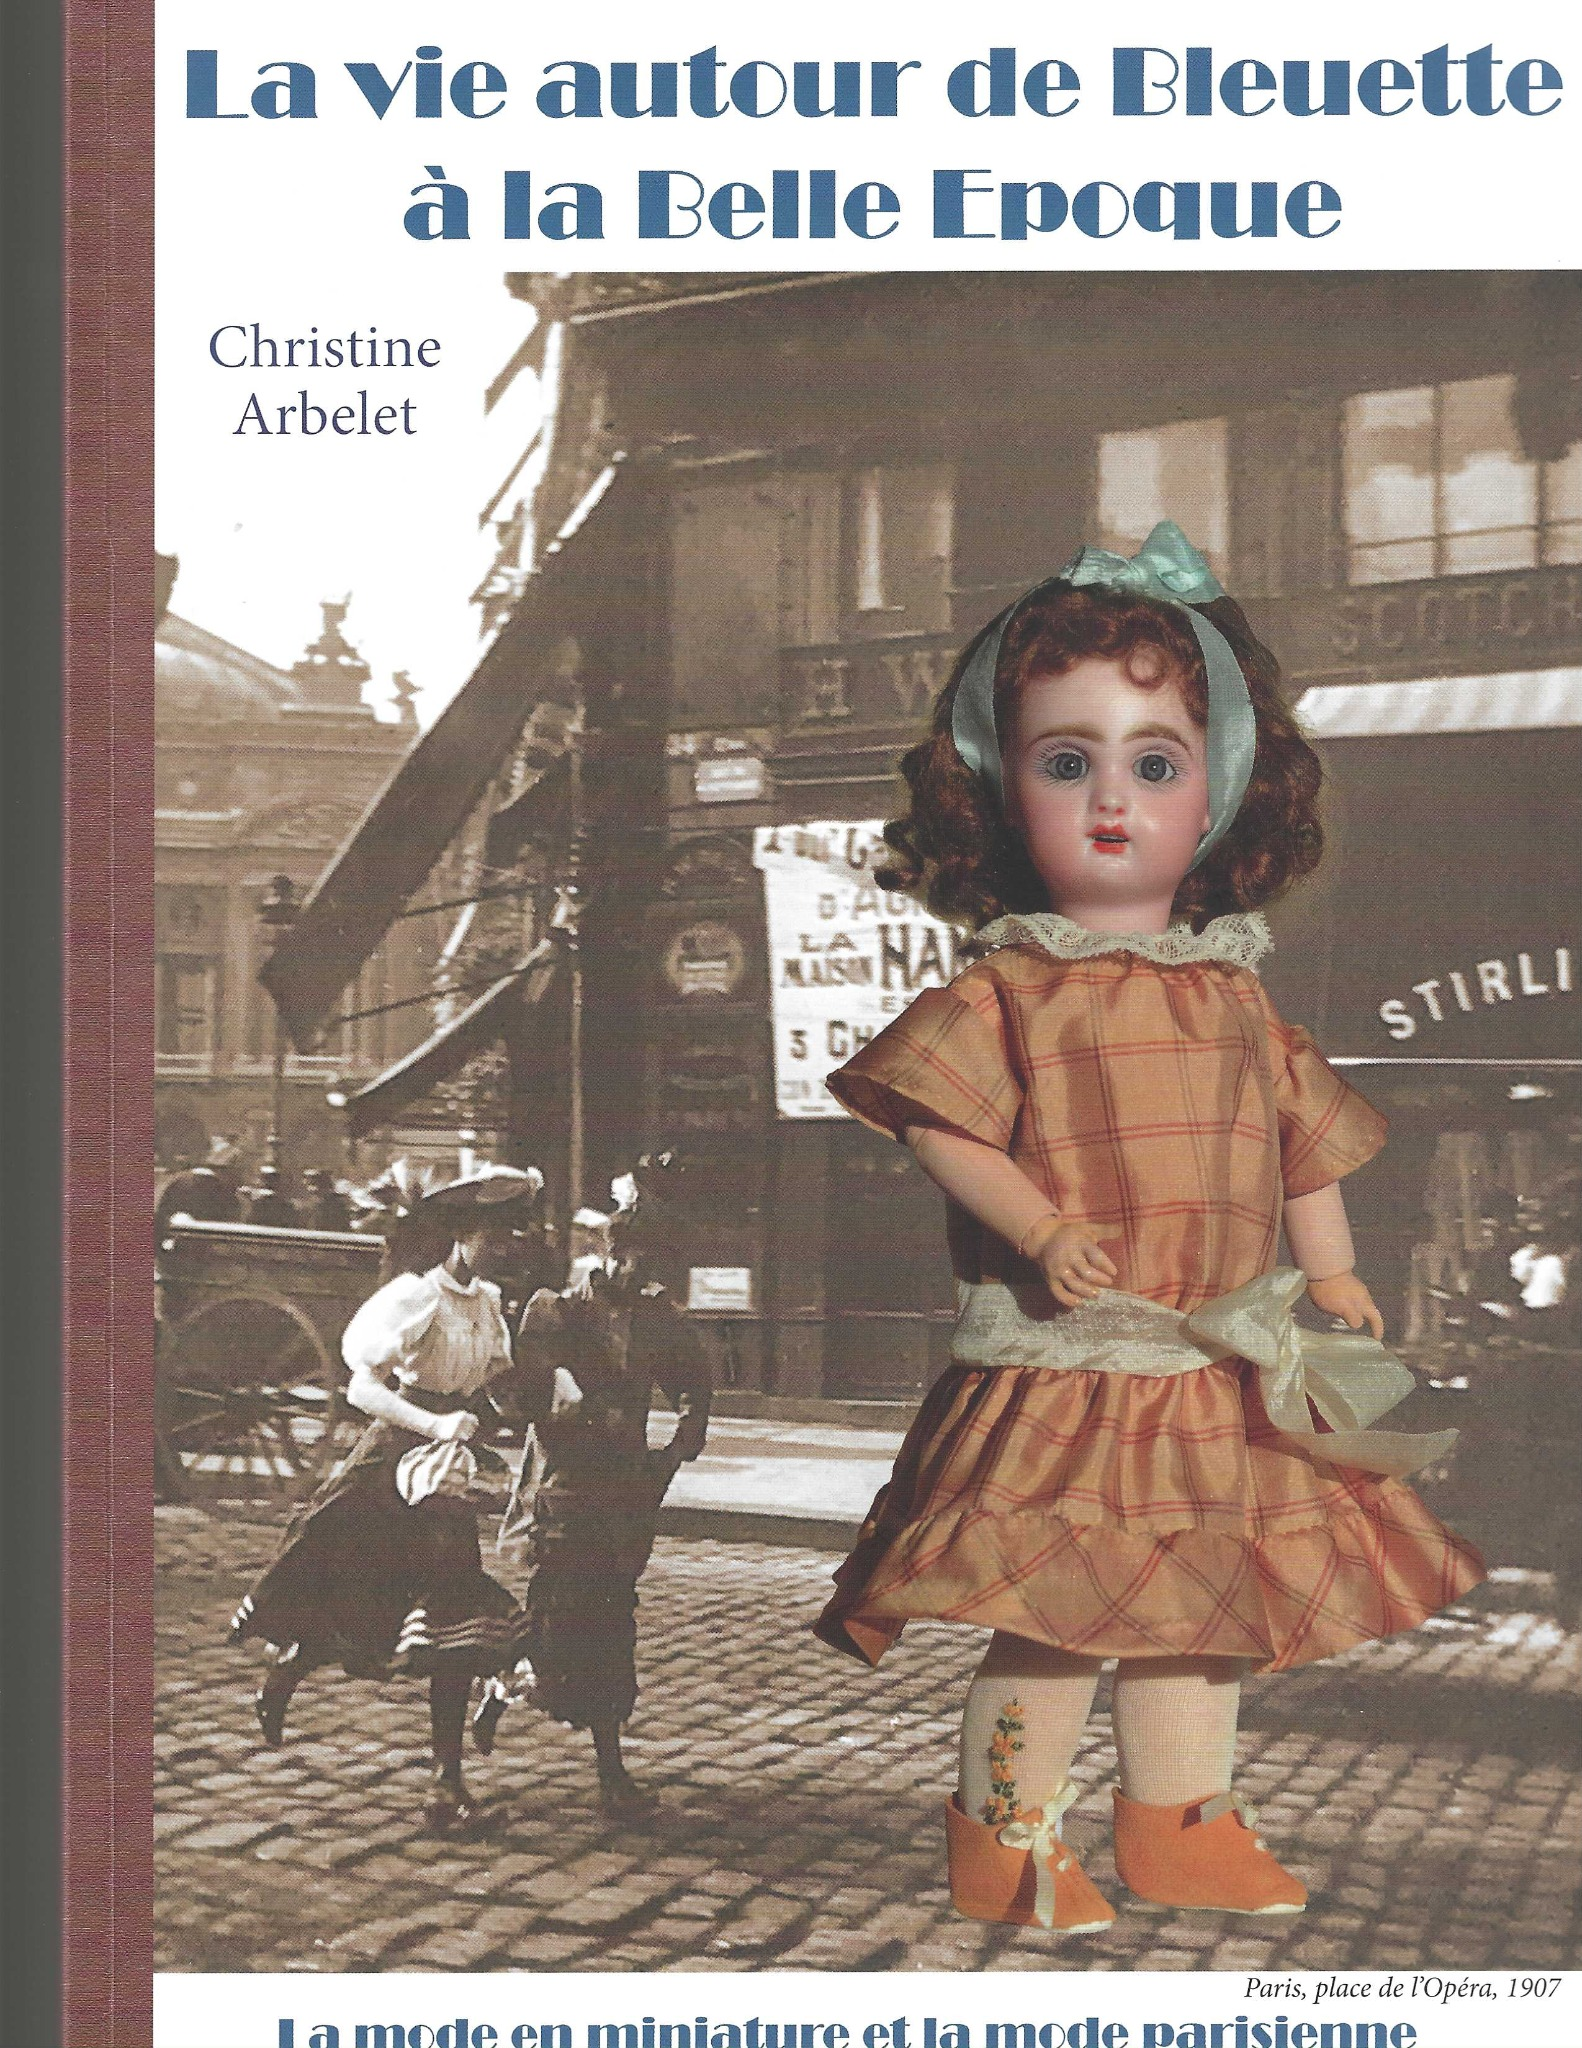 Bleuette Books #1 and #2 by Christine Arbelet